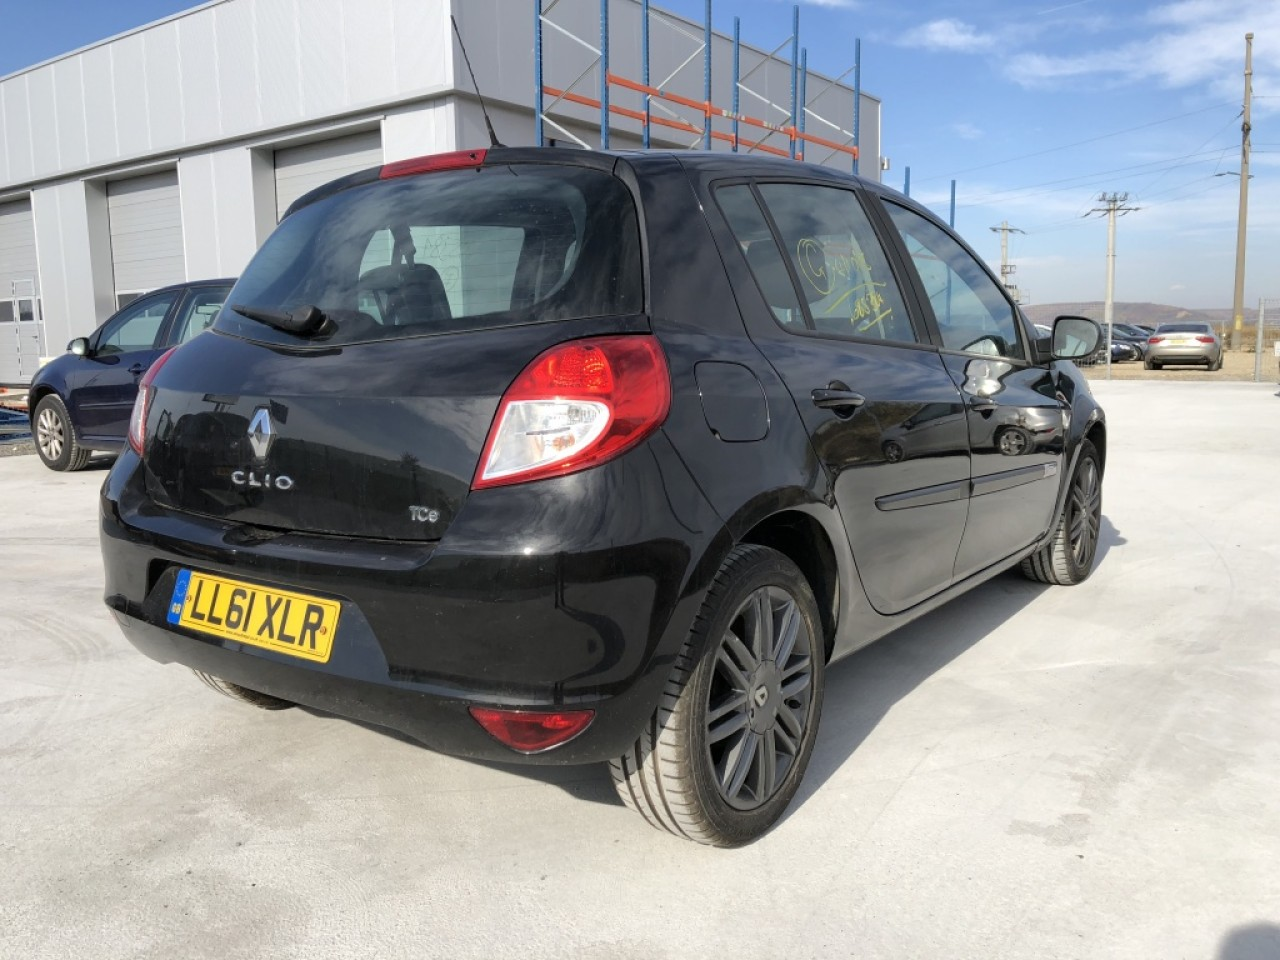 Catalizator Renault Clio 2011 Hatchback 1.2 TCe Tom Tom